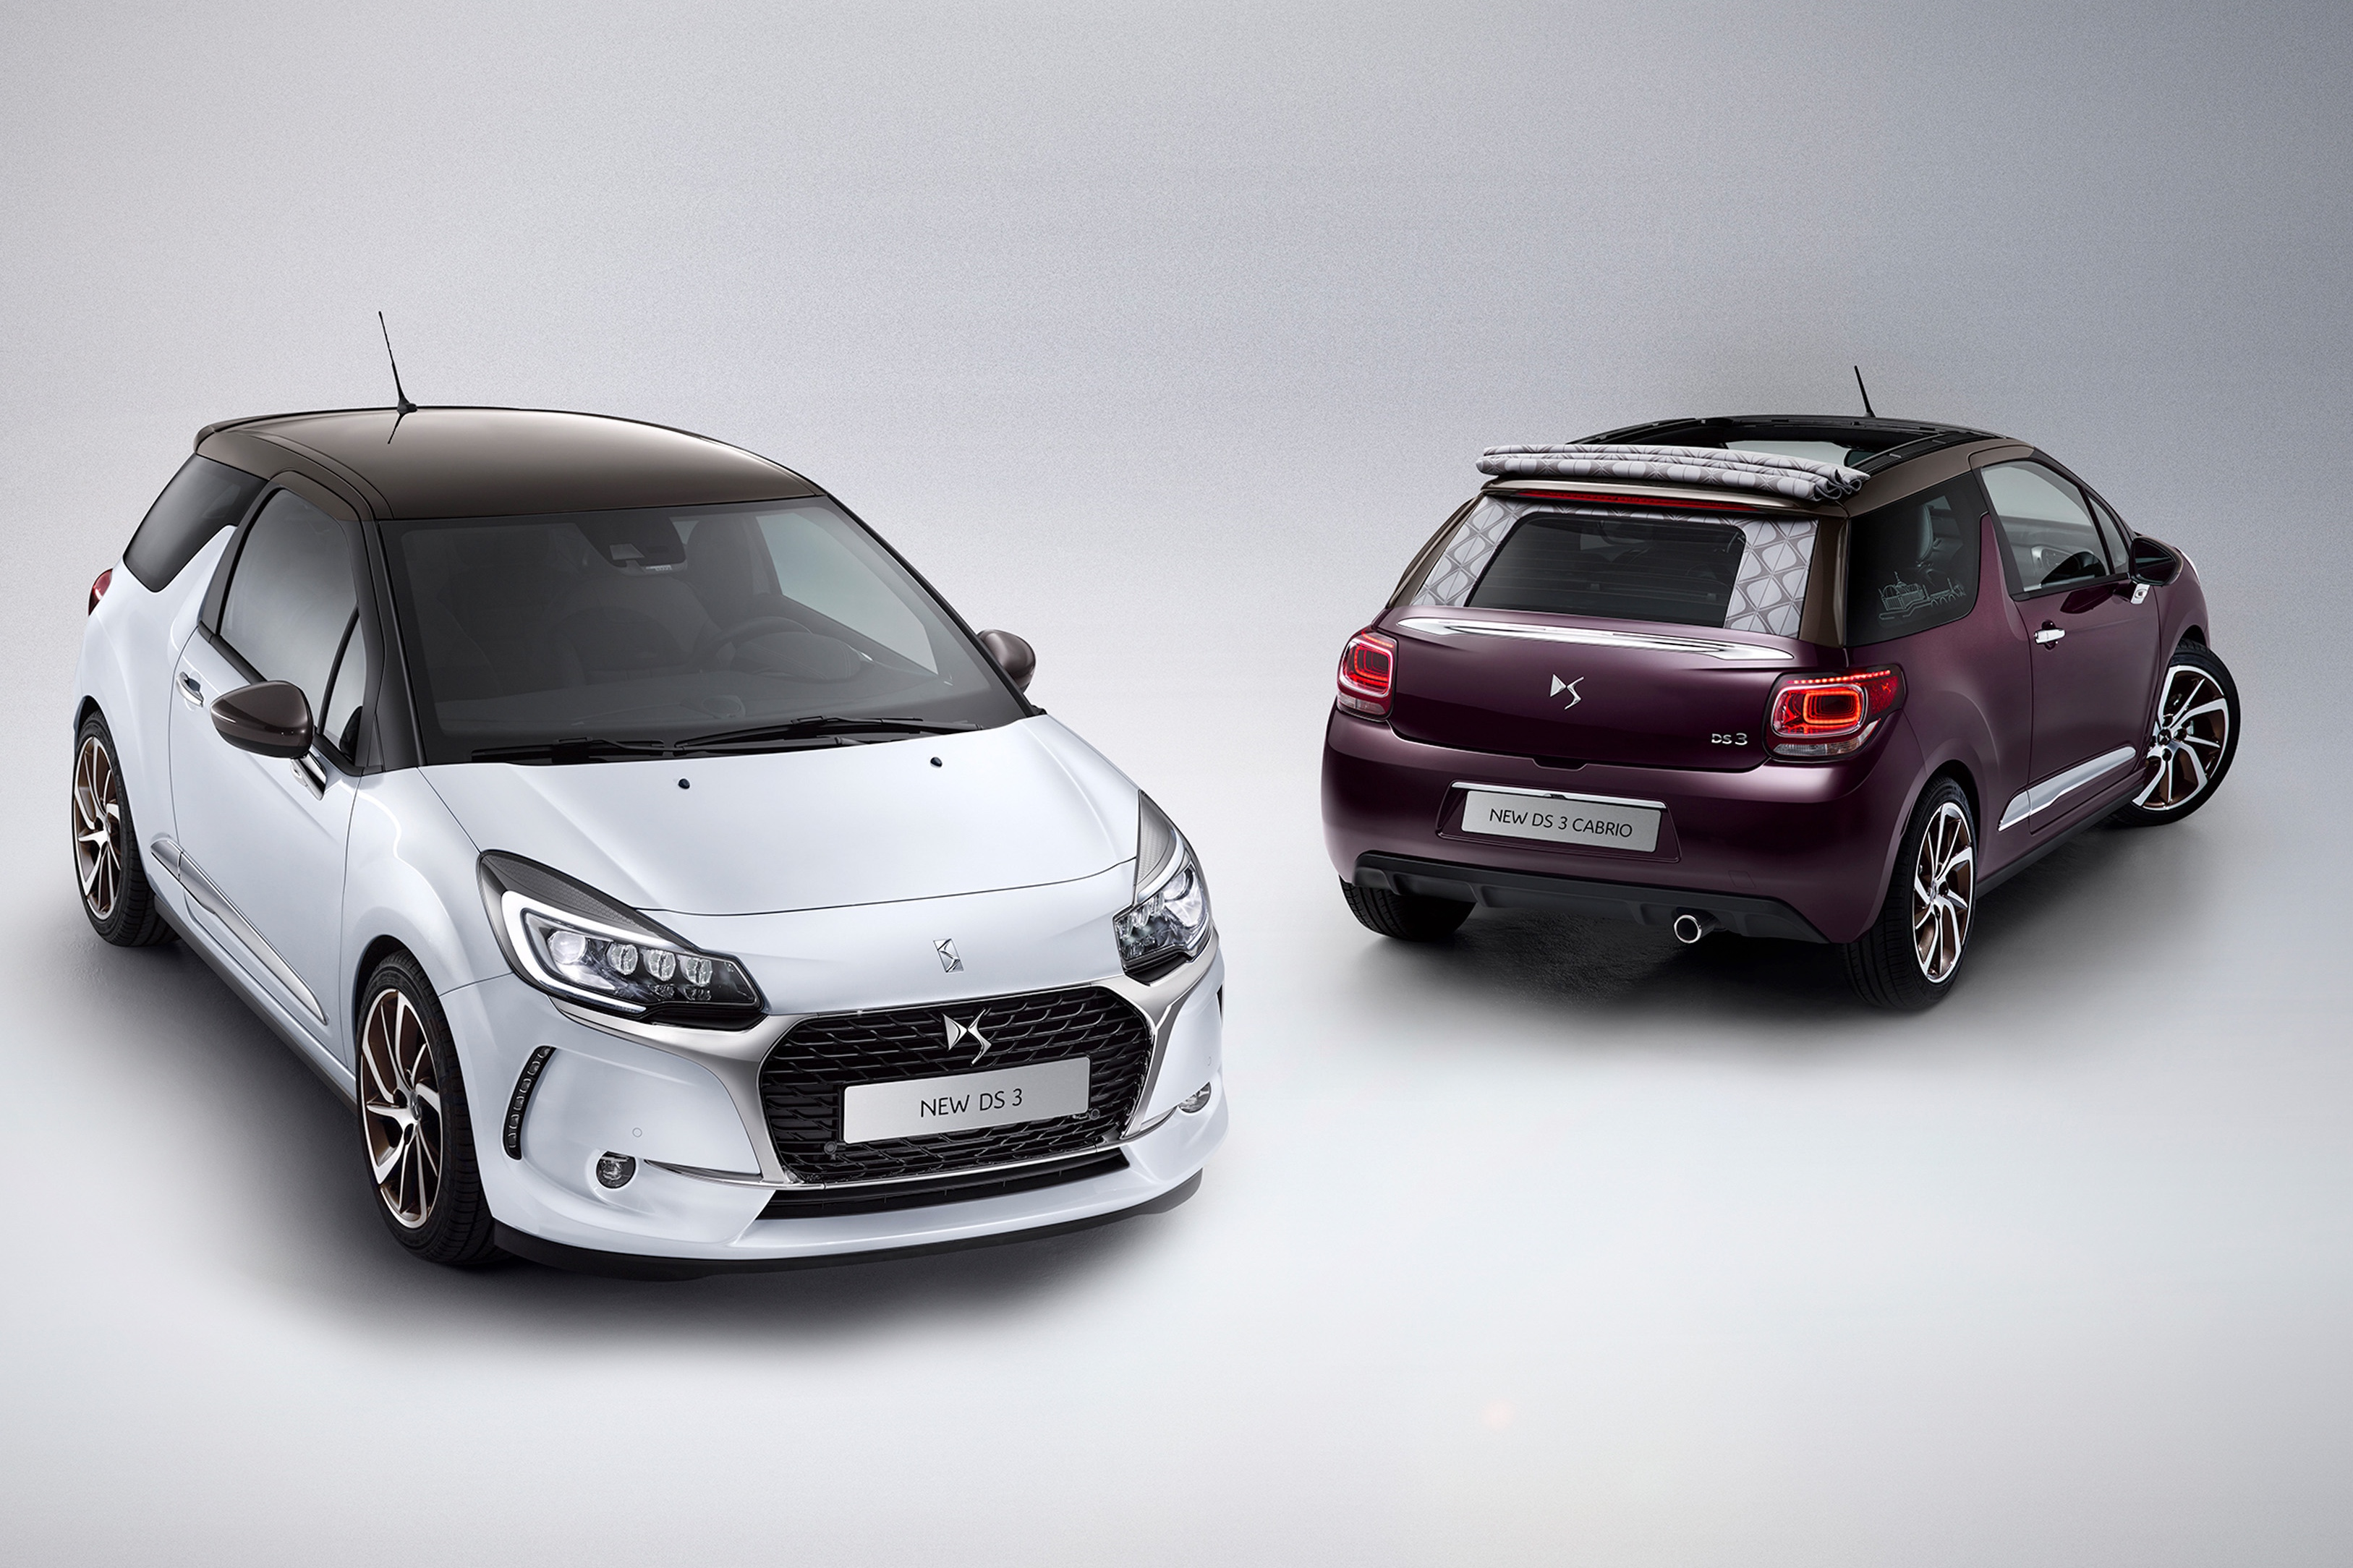 ds automobiles unveils facelifted ds3 and ds3 cabrio autoevolution. Black Bedroom Furniture Sets. Home Design Ideas